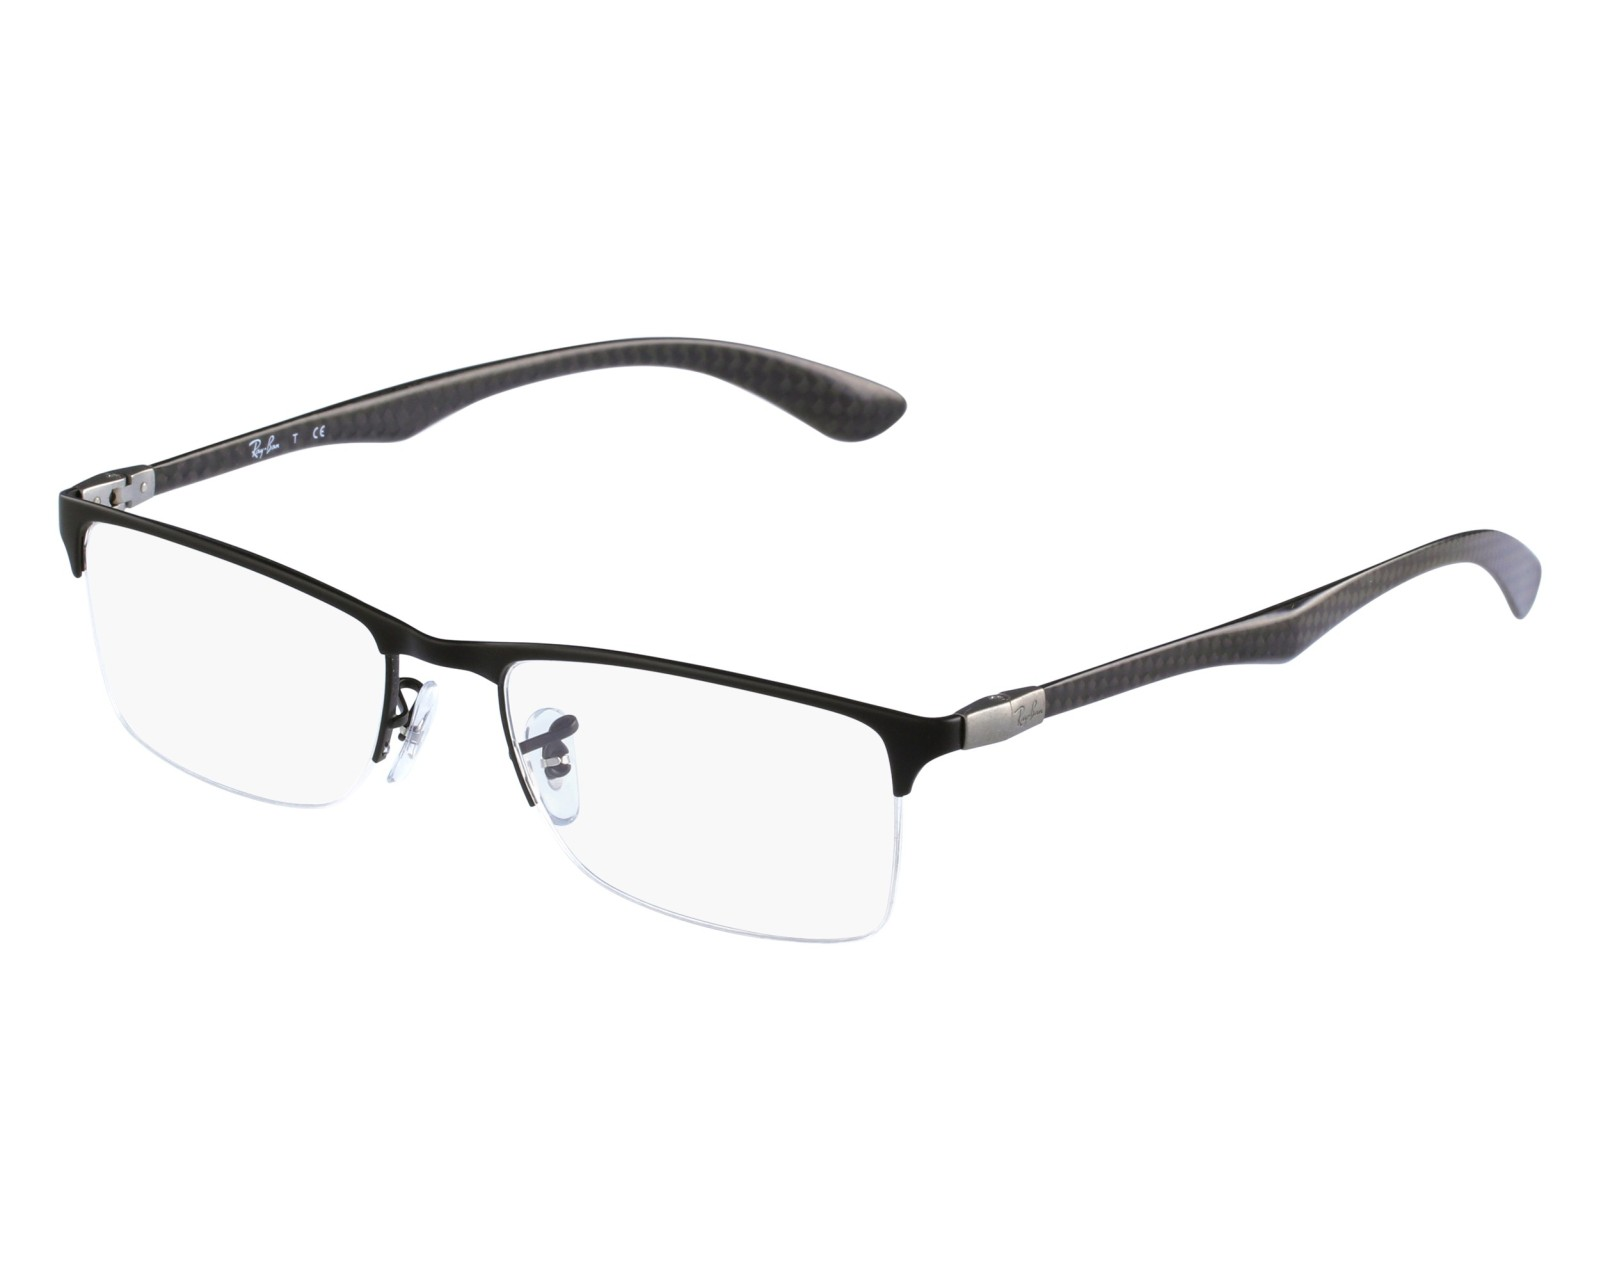 25267b63e50ad2 where can i buy eyeglasses ray ban rx 8413 2503 52 18 black front view 8f82f